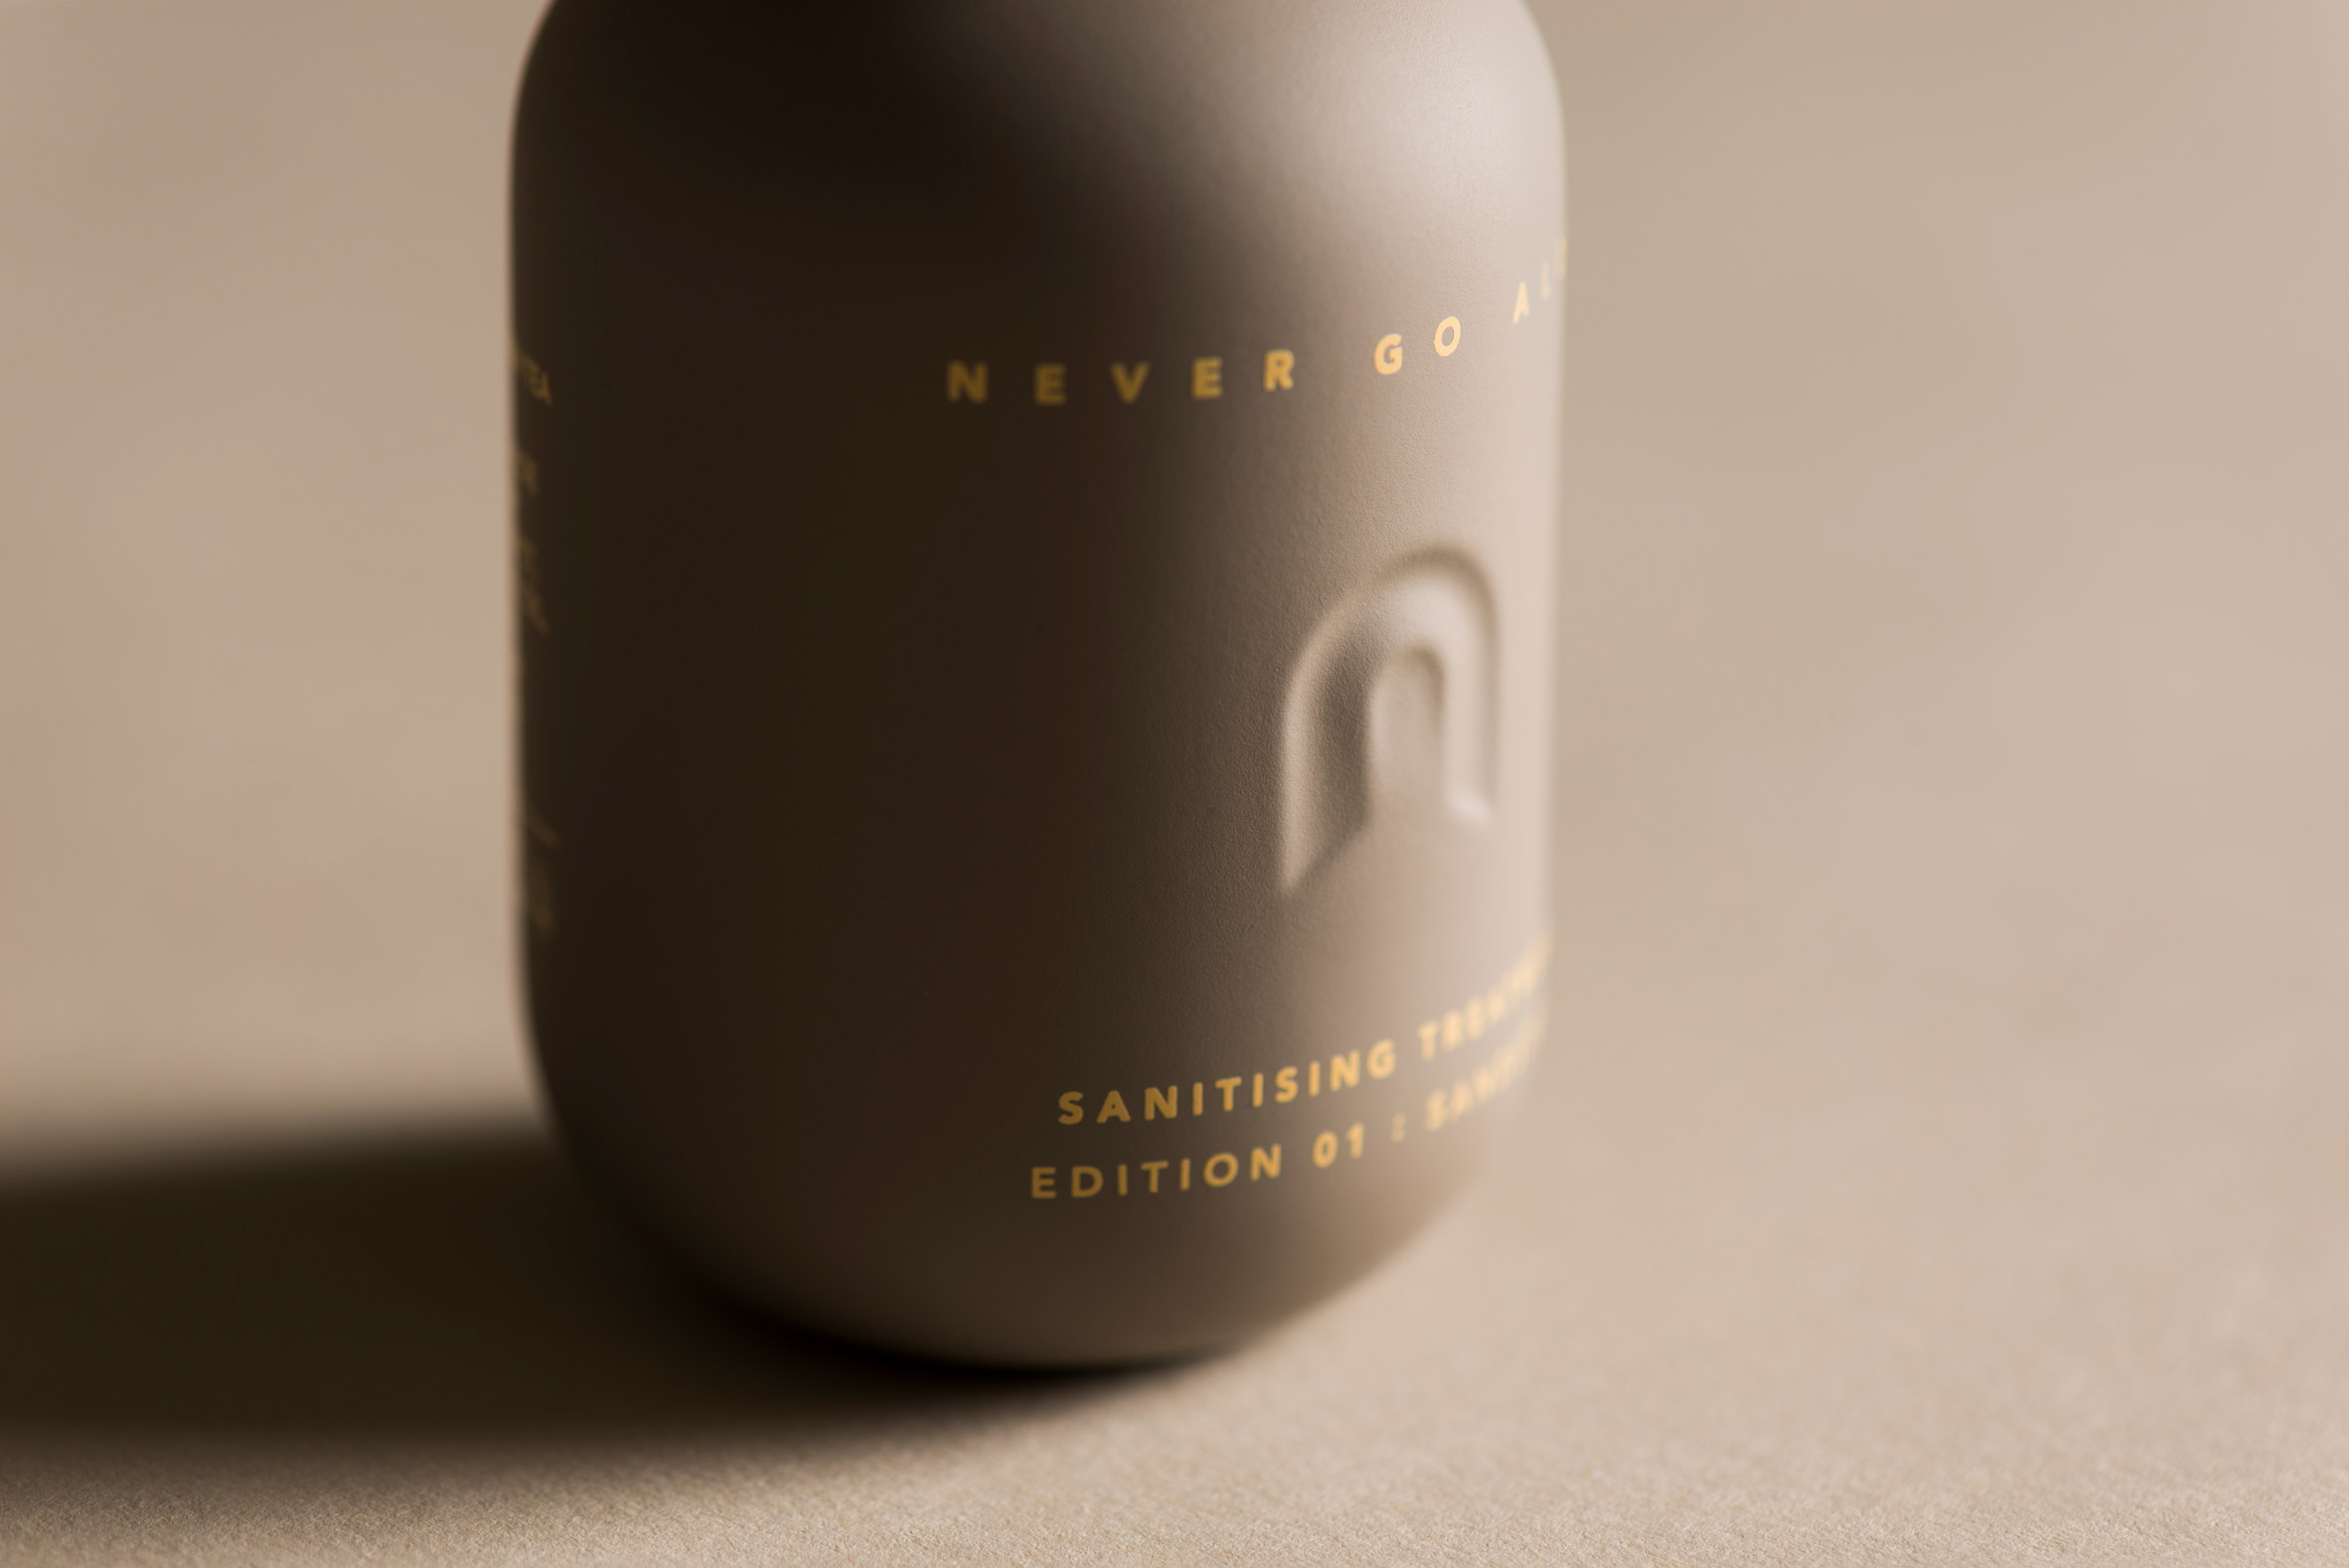 Never Go Alone branding by Layer